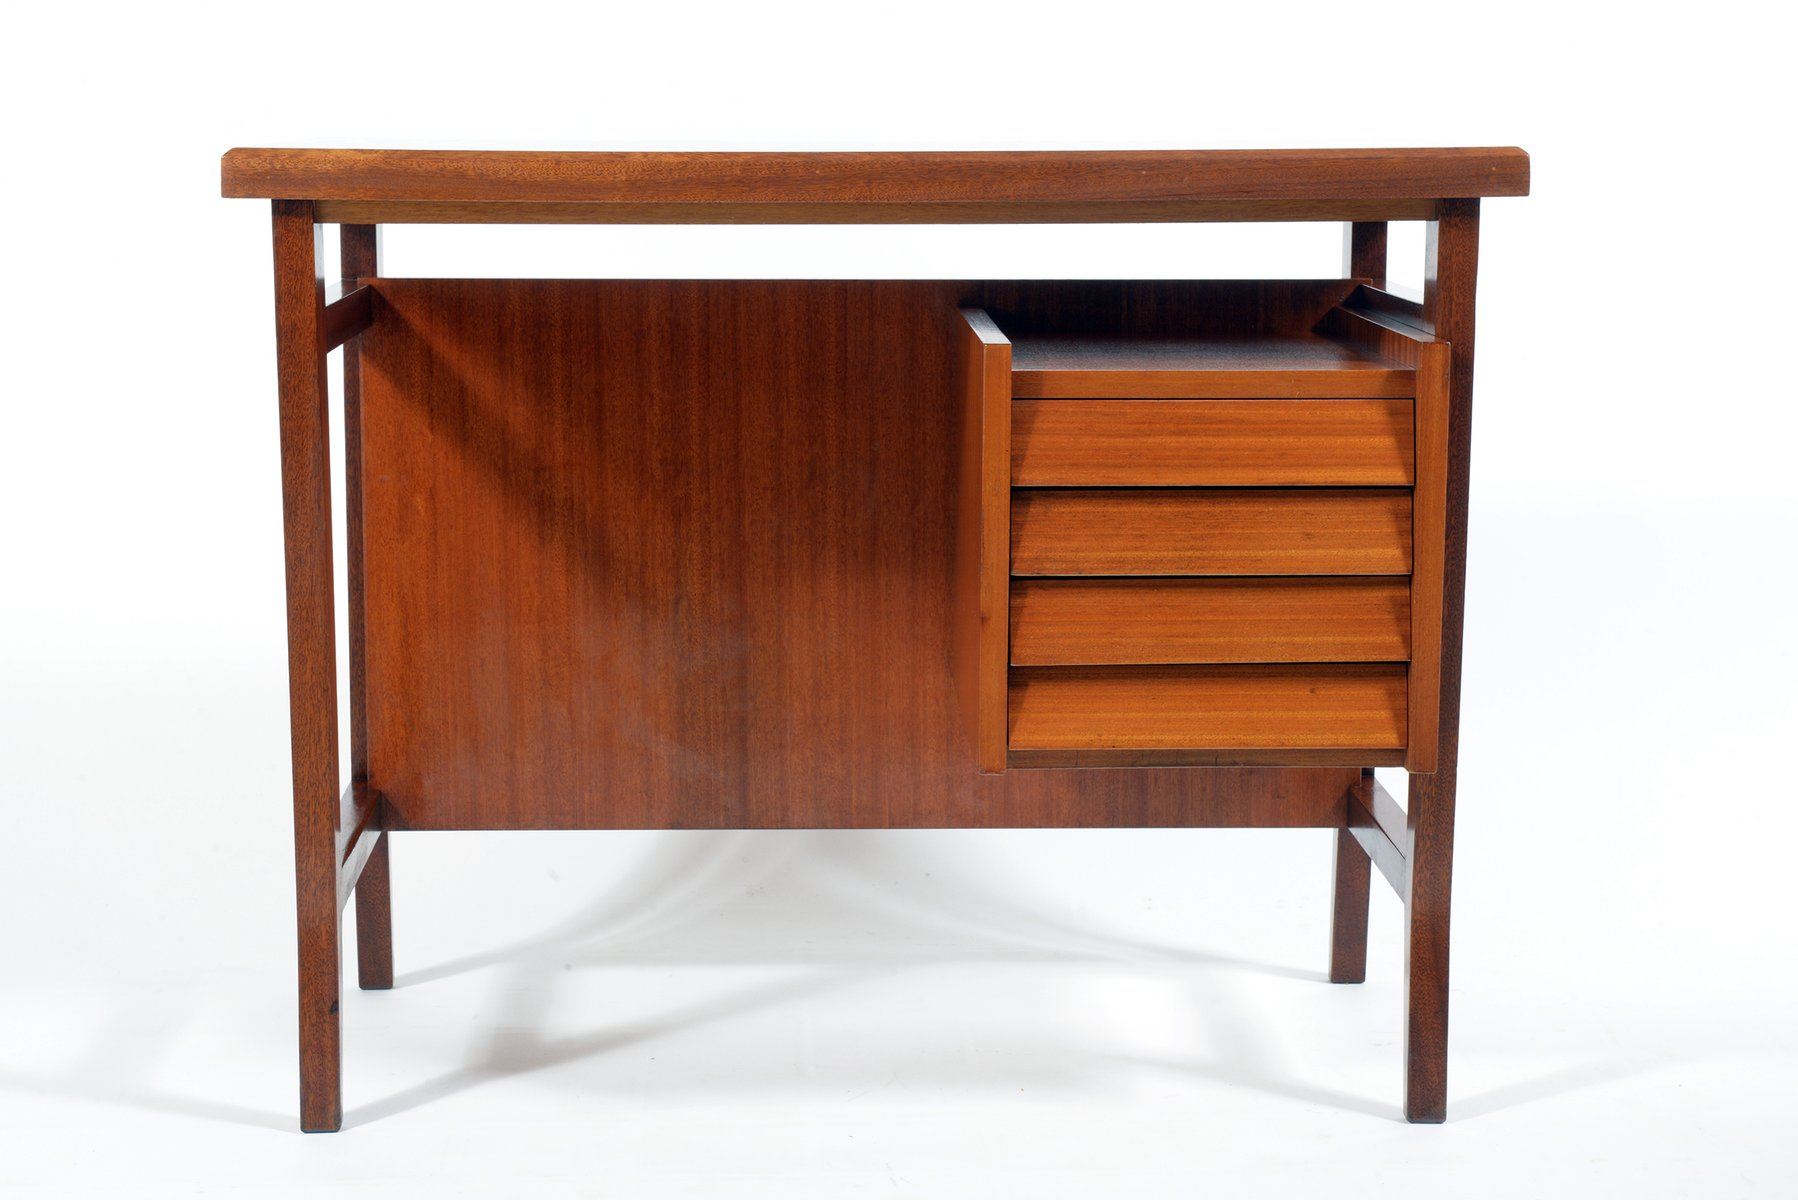 Small Italian Writing Desk by Gio Ponti for Schirolli 1950s for